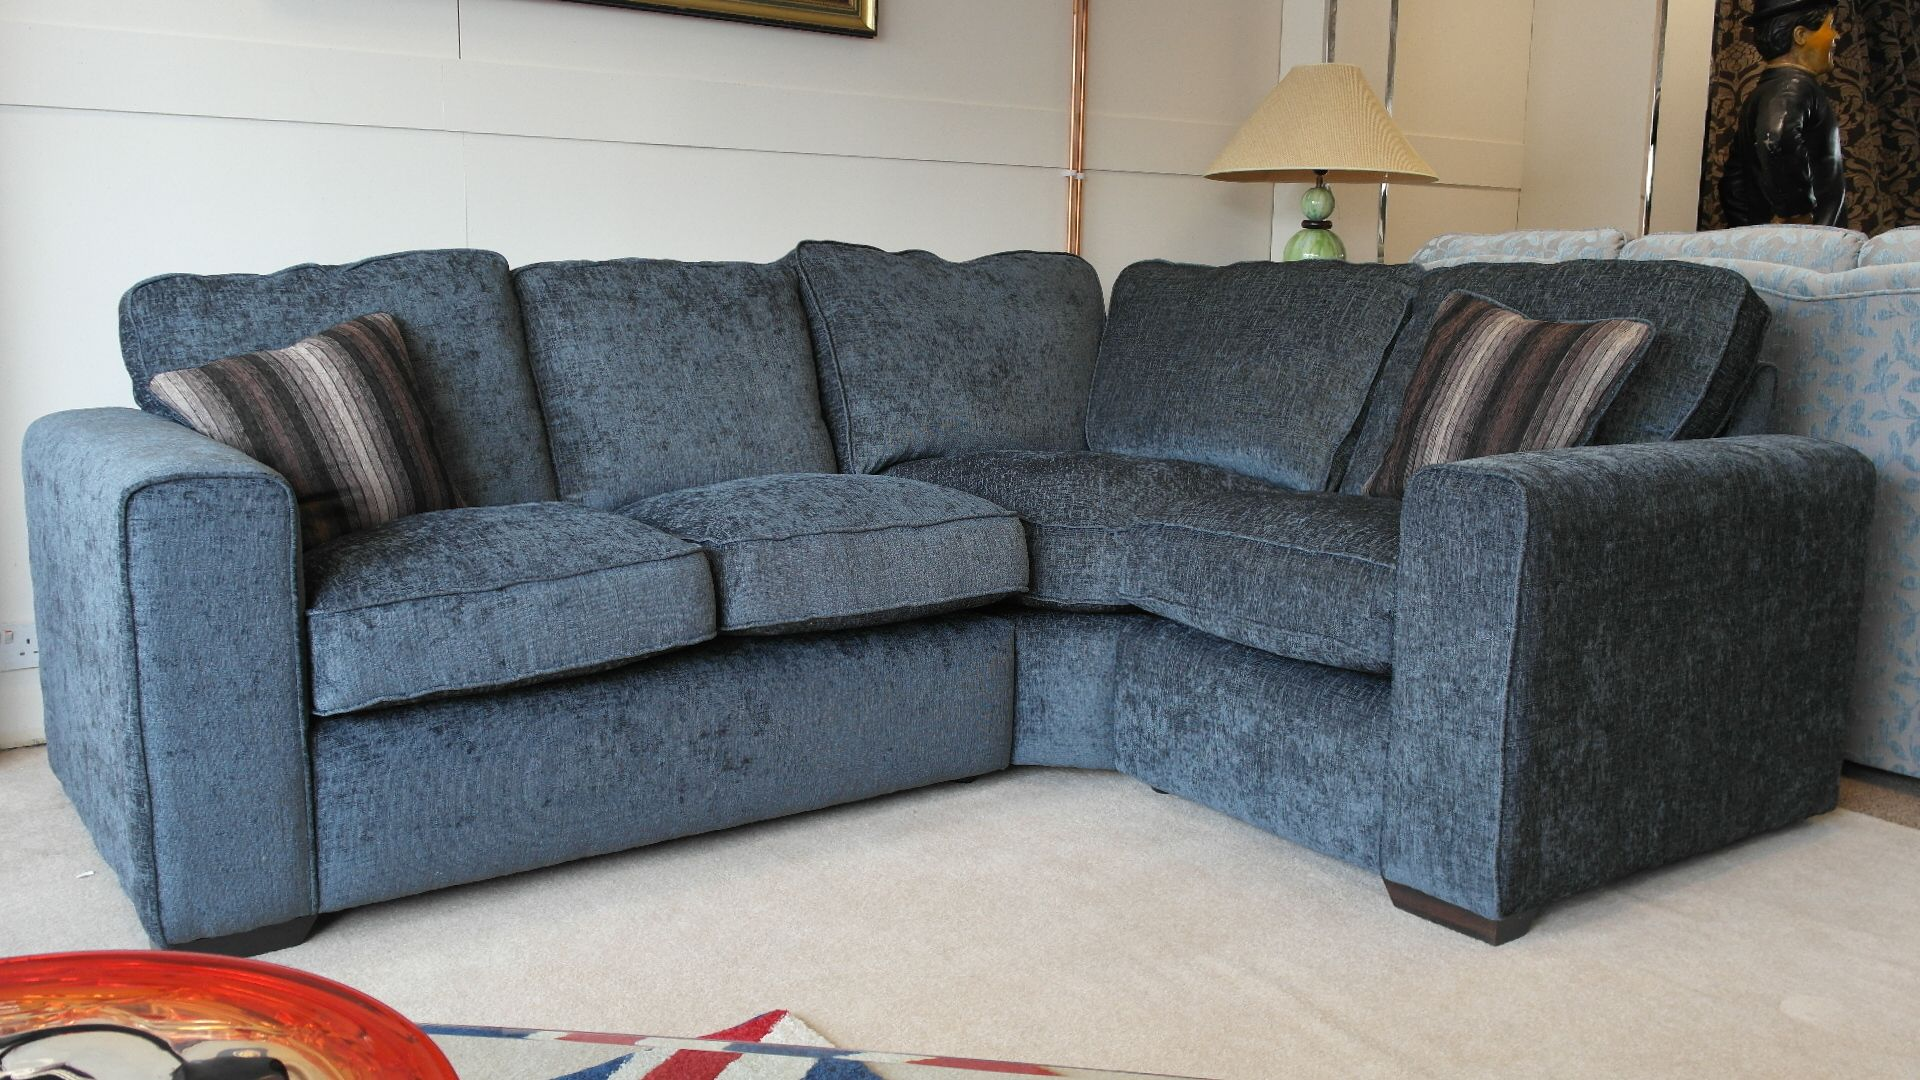 Sofa Uk Clearance Clearance Sofas Uk Awesome Home